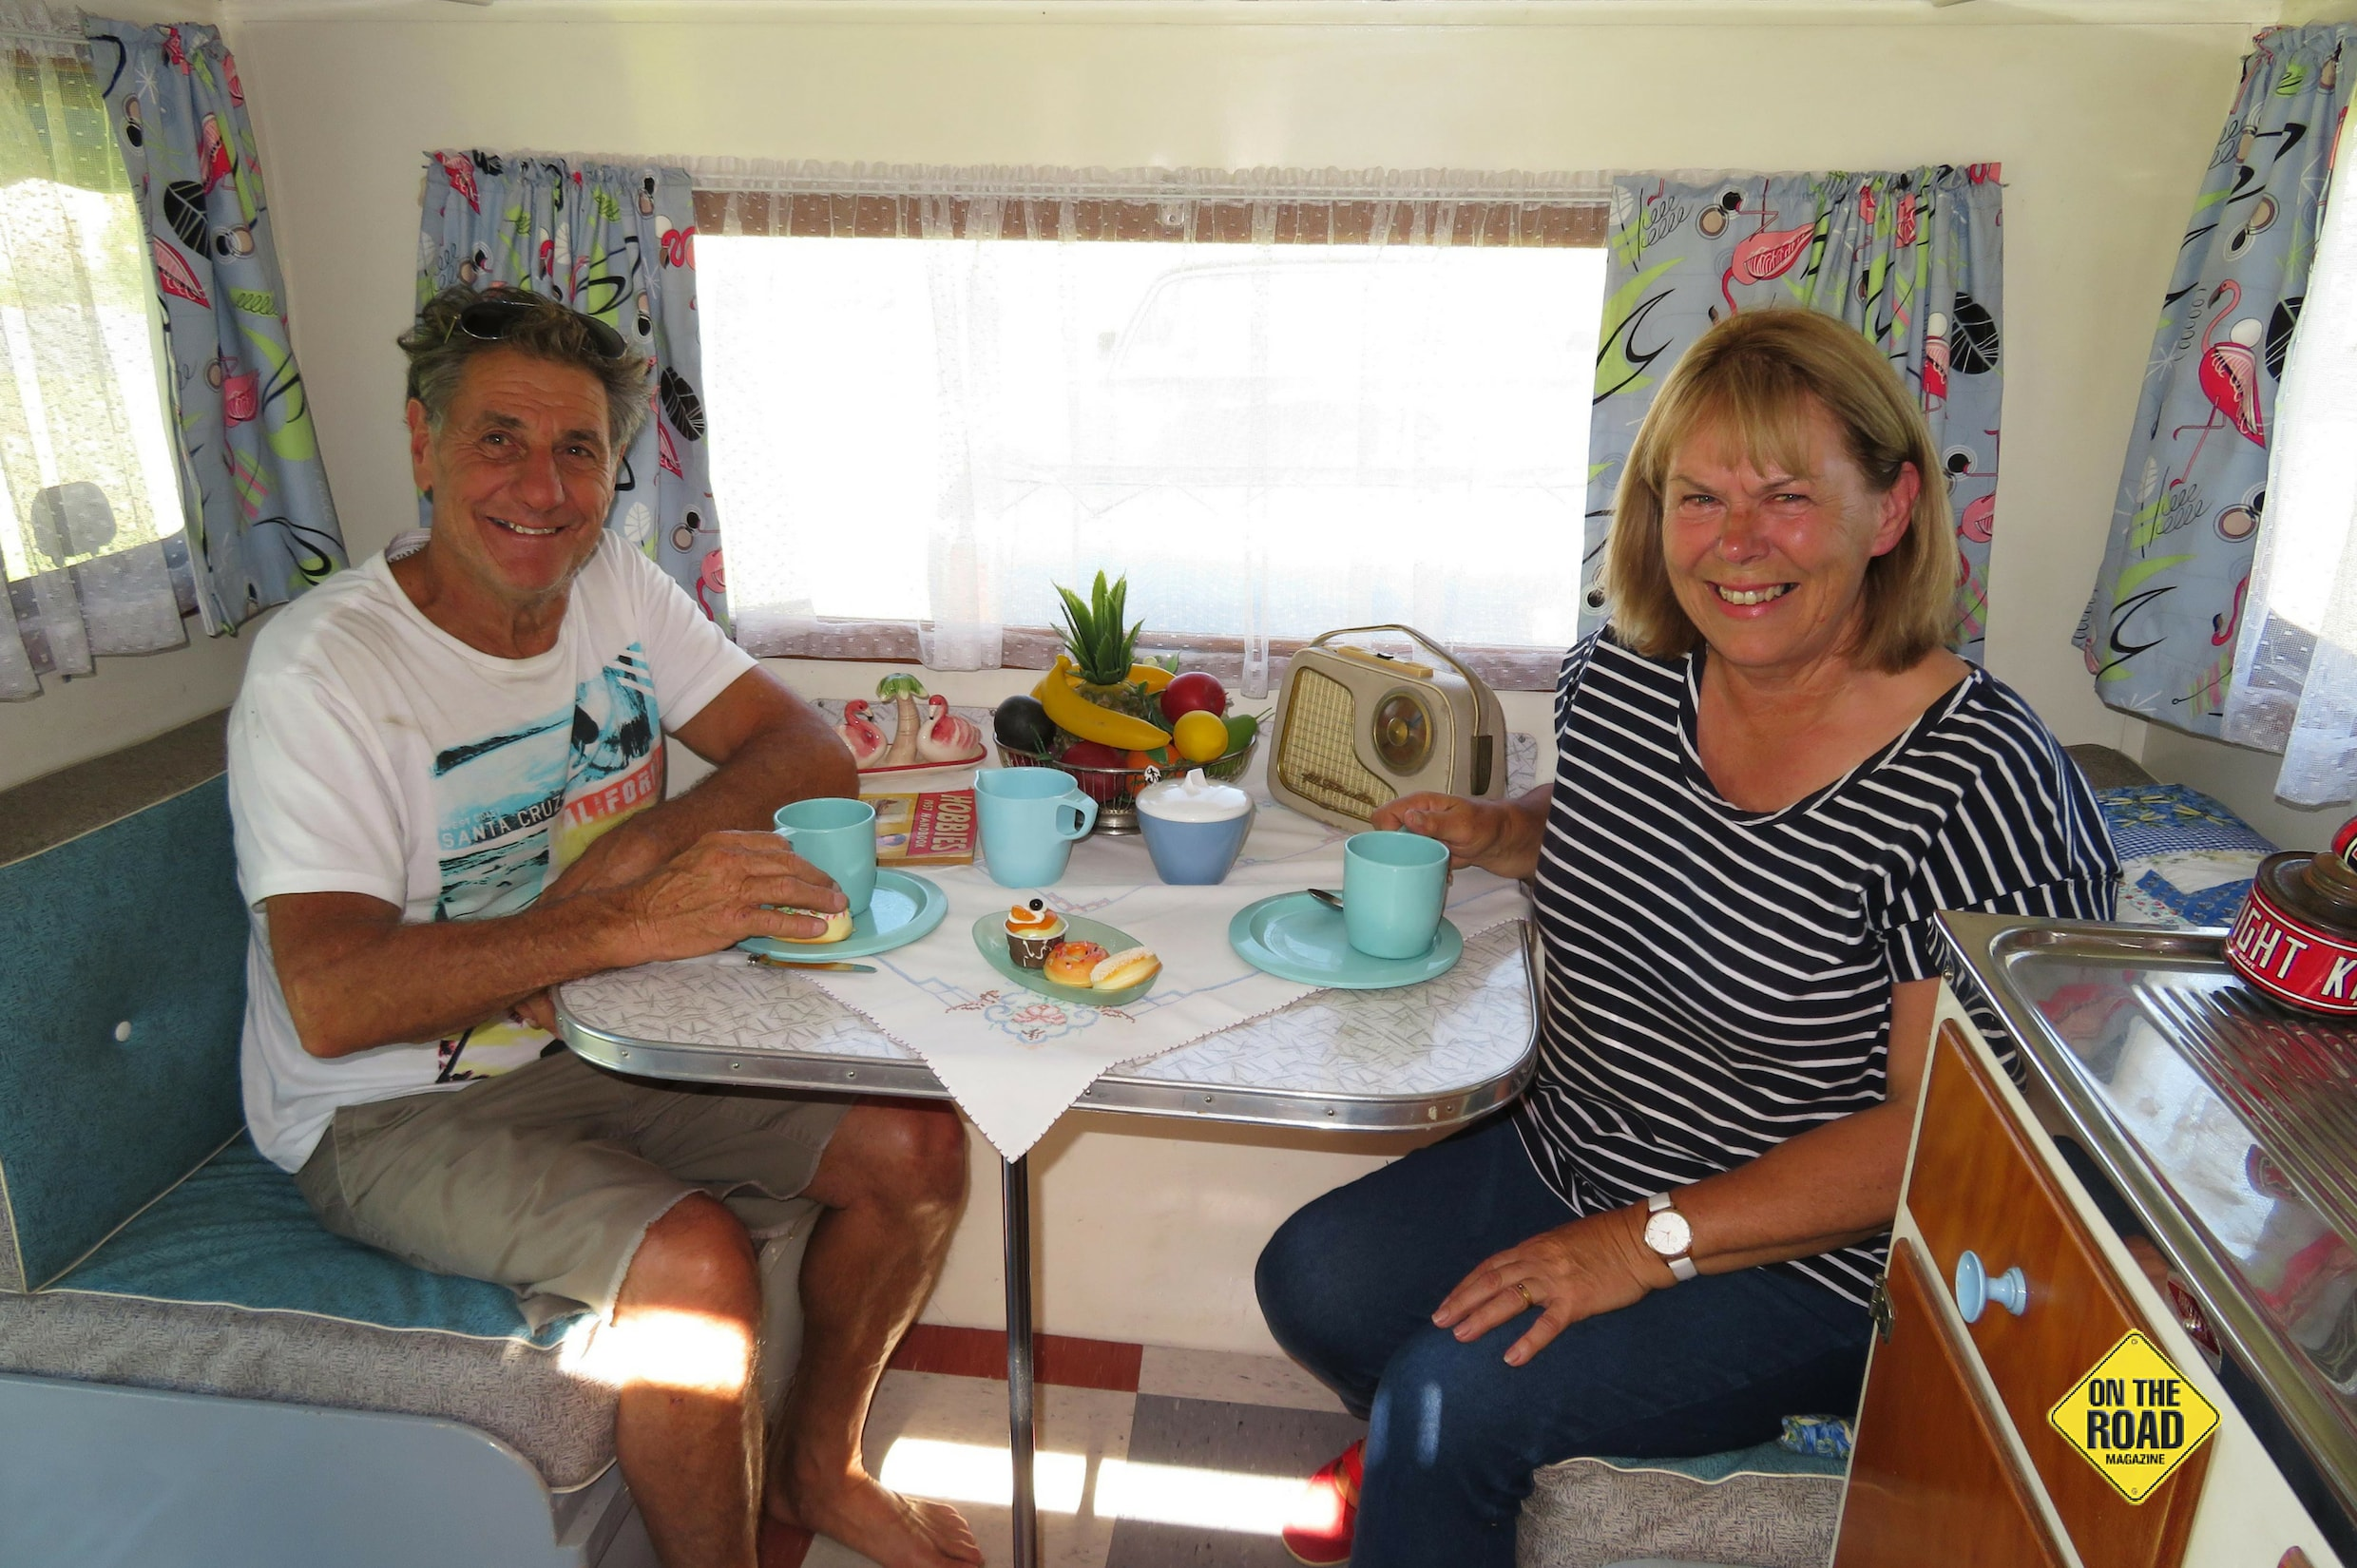 Dennis and Sandra Virgona are passionate and proud owners of their little van